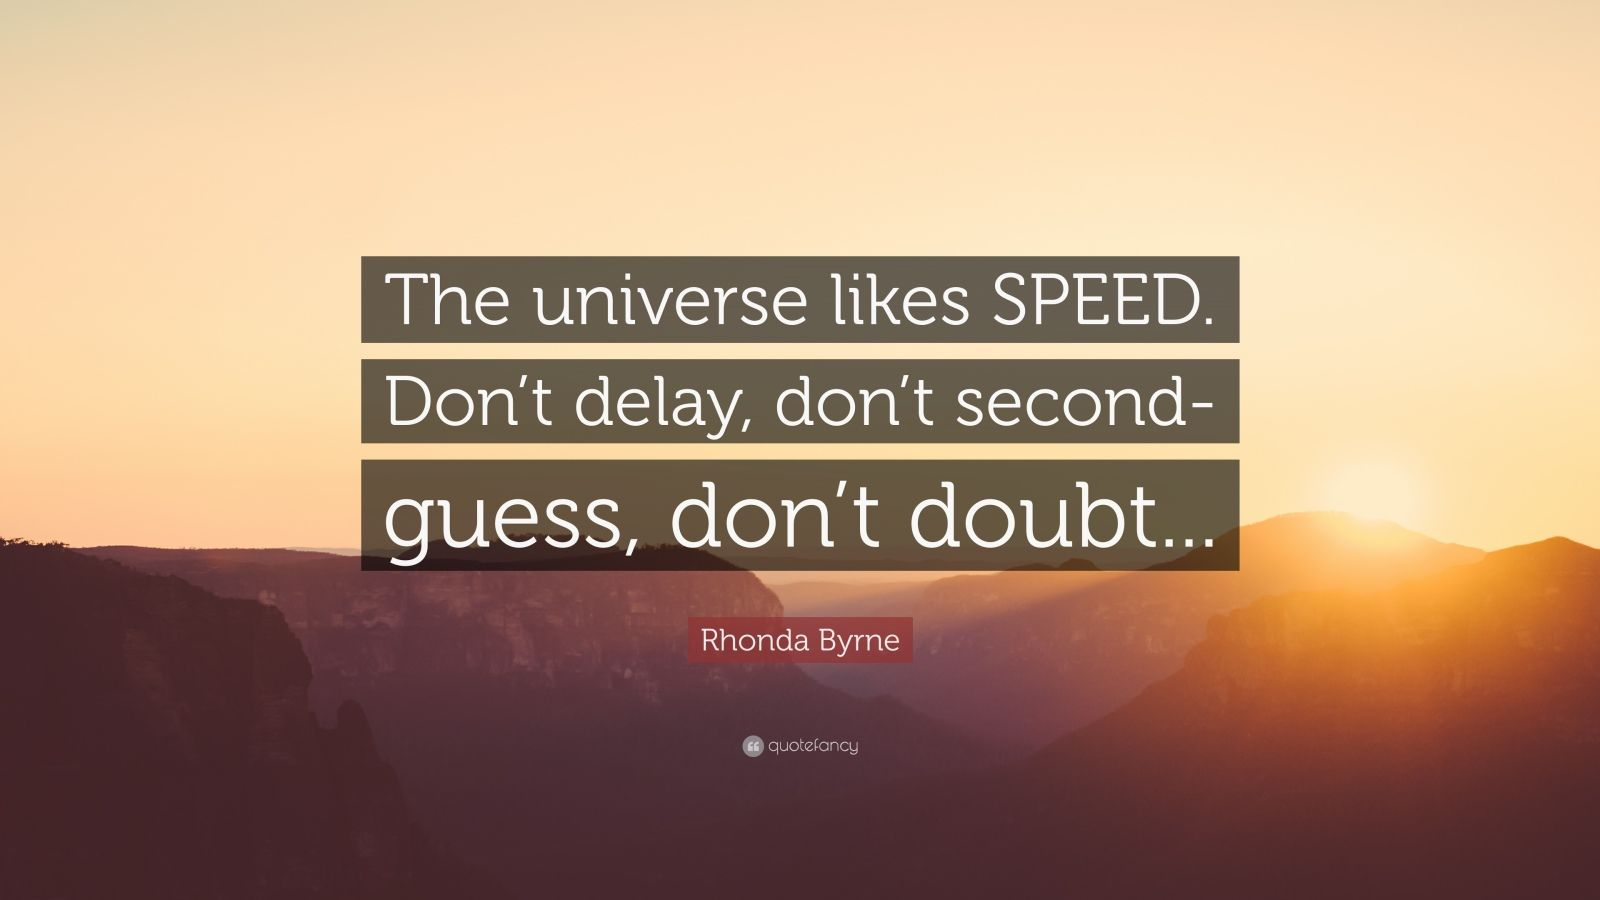 """Rhonda Byrne Quote: """"The universe likes SPEED. Don't delay, don't second-guess, don't doubt..."""""""